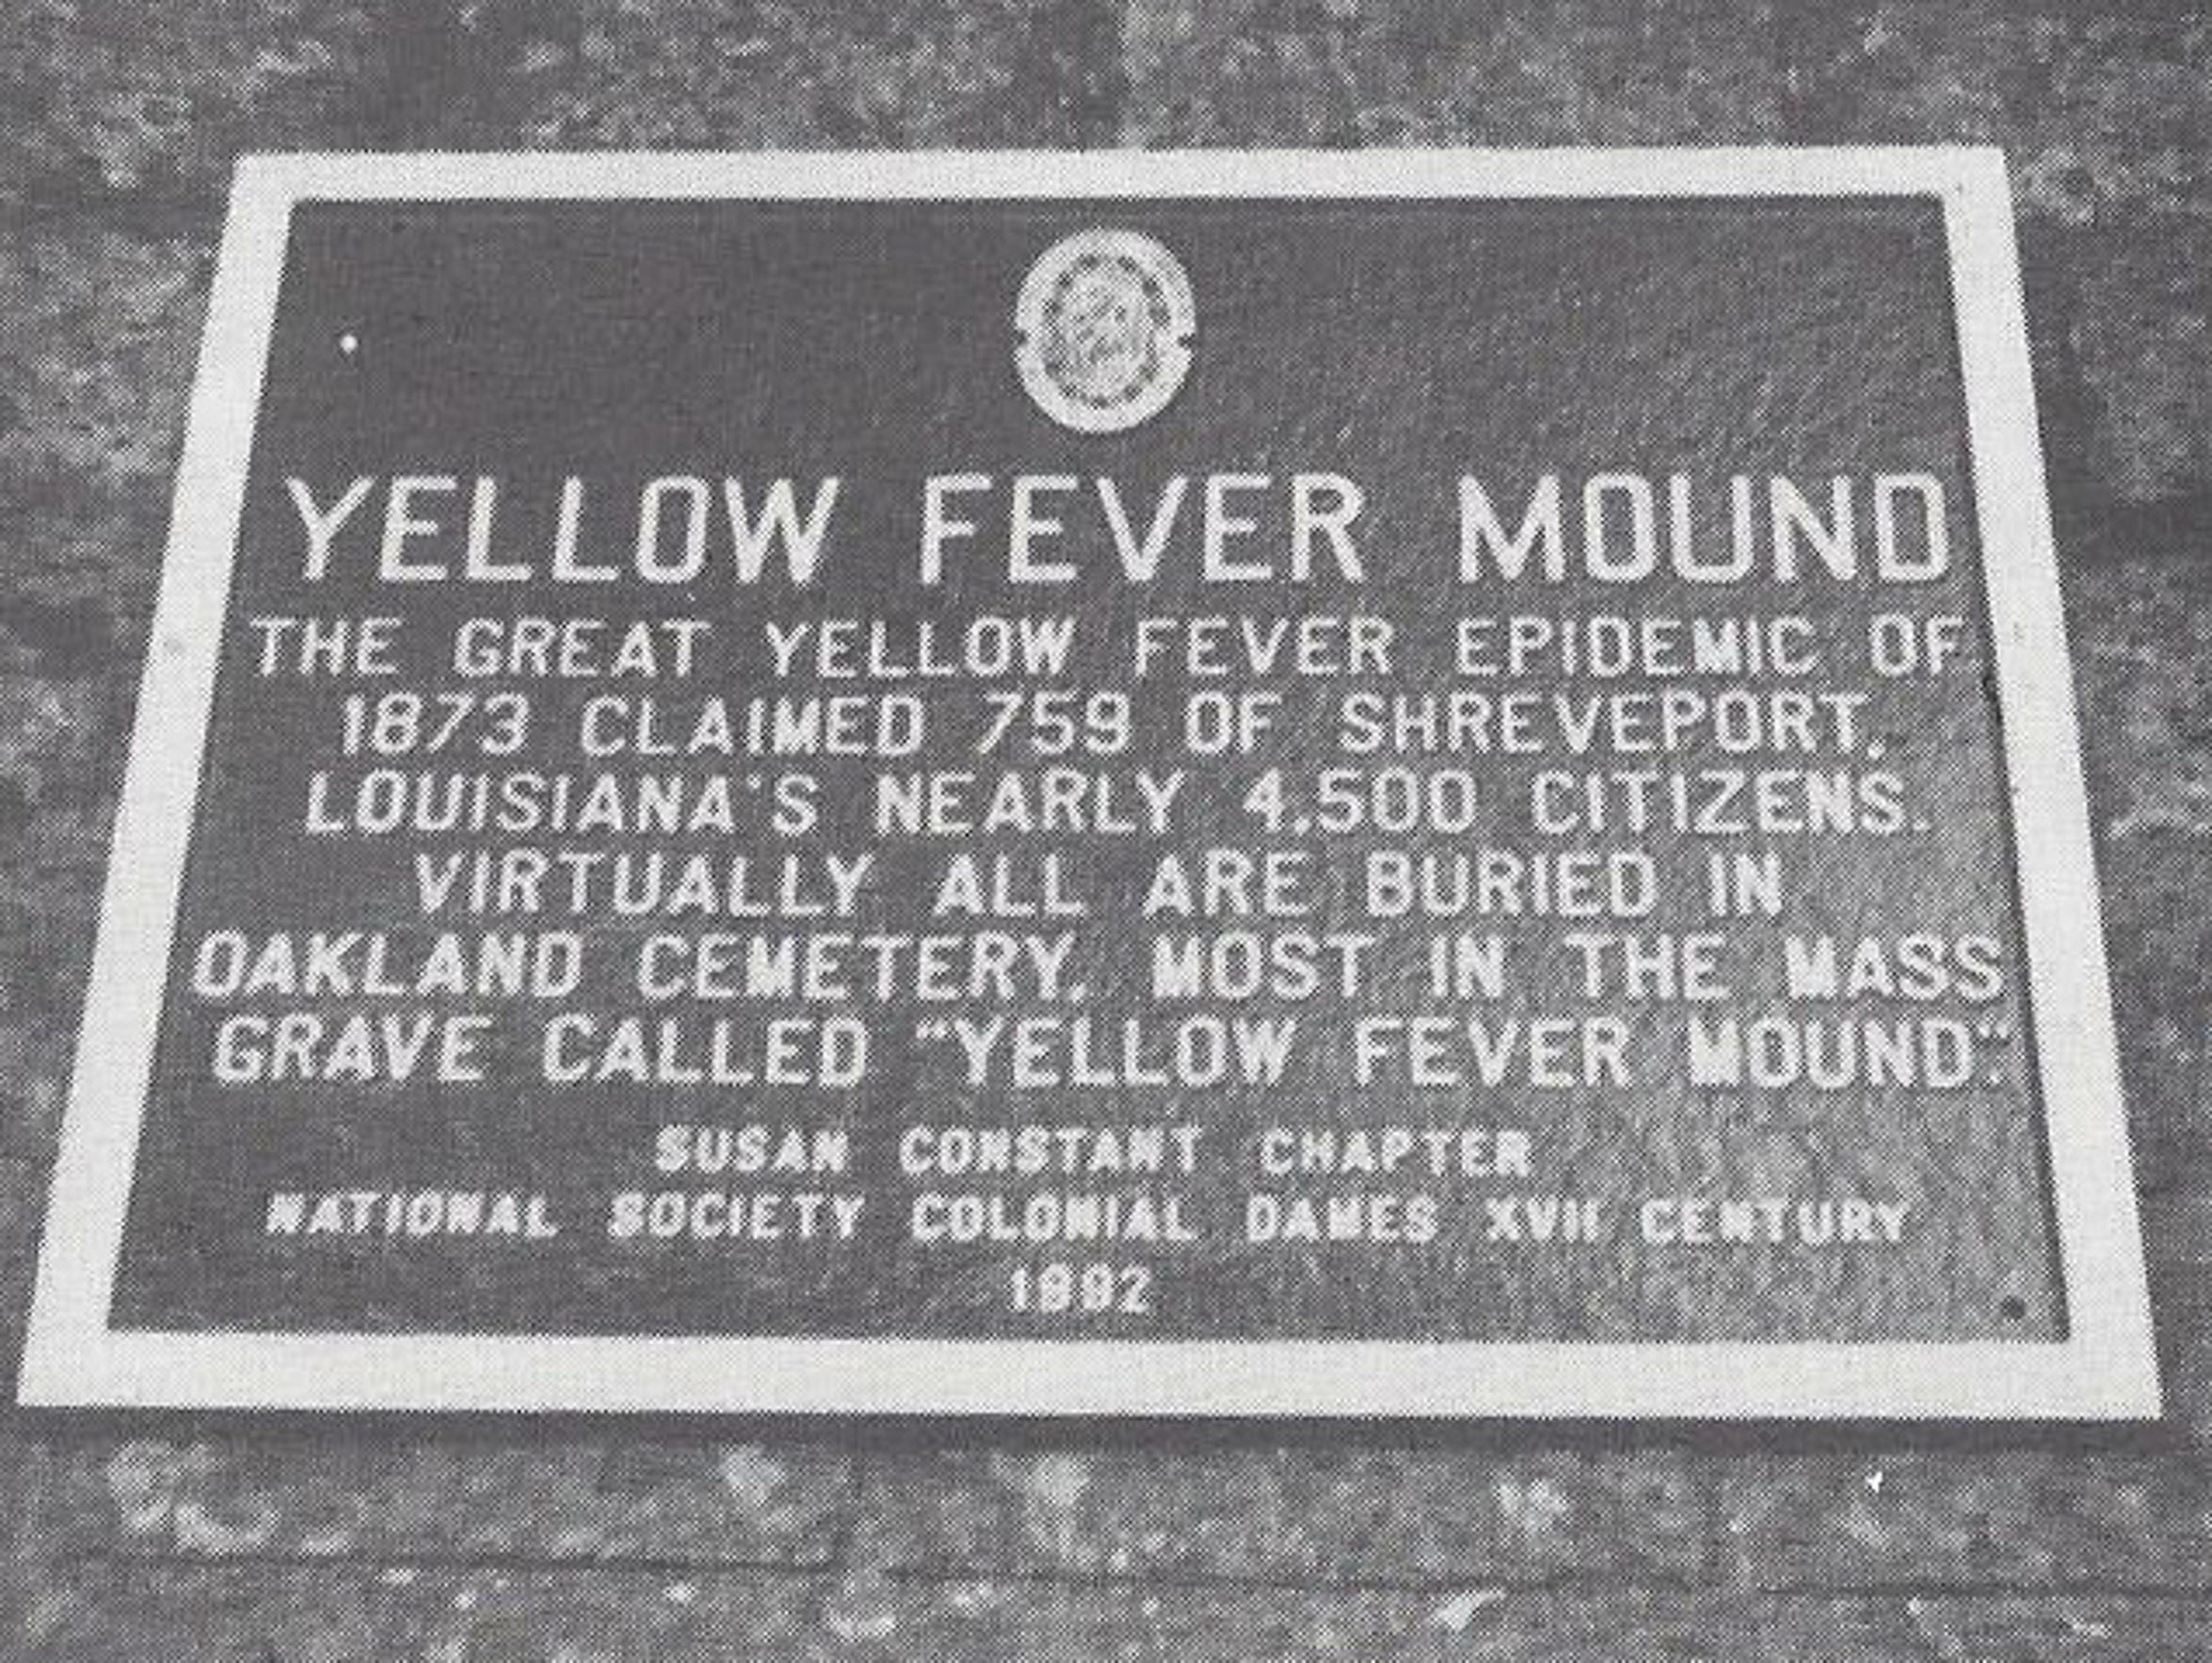 A place memorizing the Great Yellow Fever Epidemic